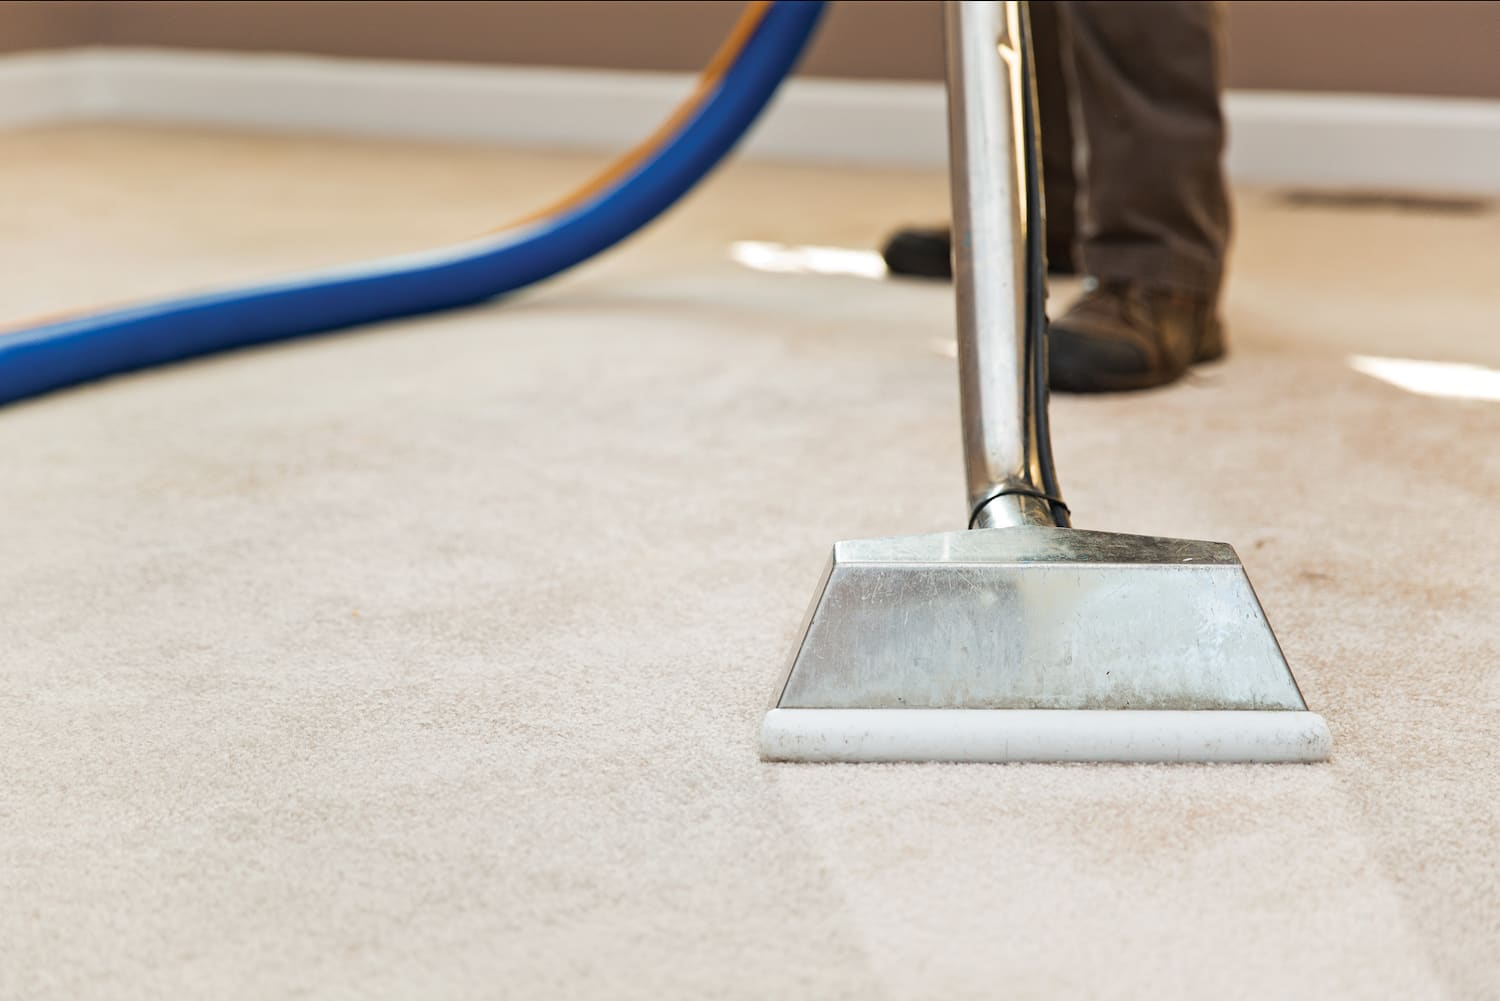 How Much Does Carpet Cleaning Cost? | Angi [Angie's List]